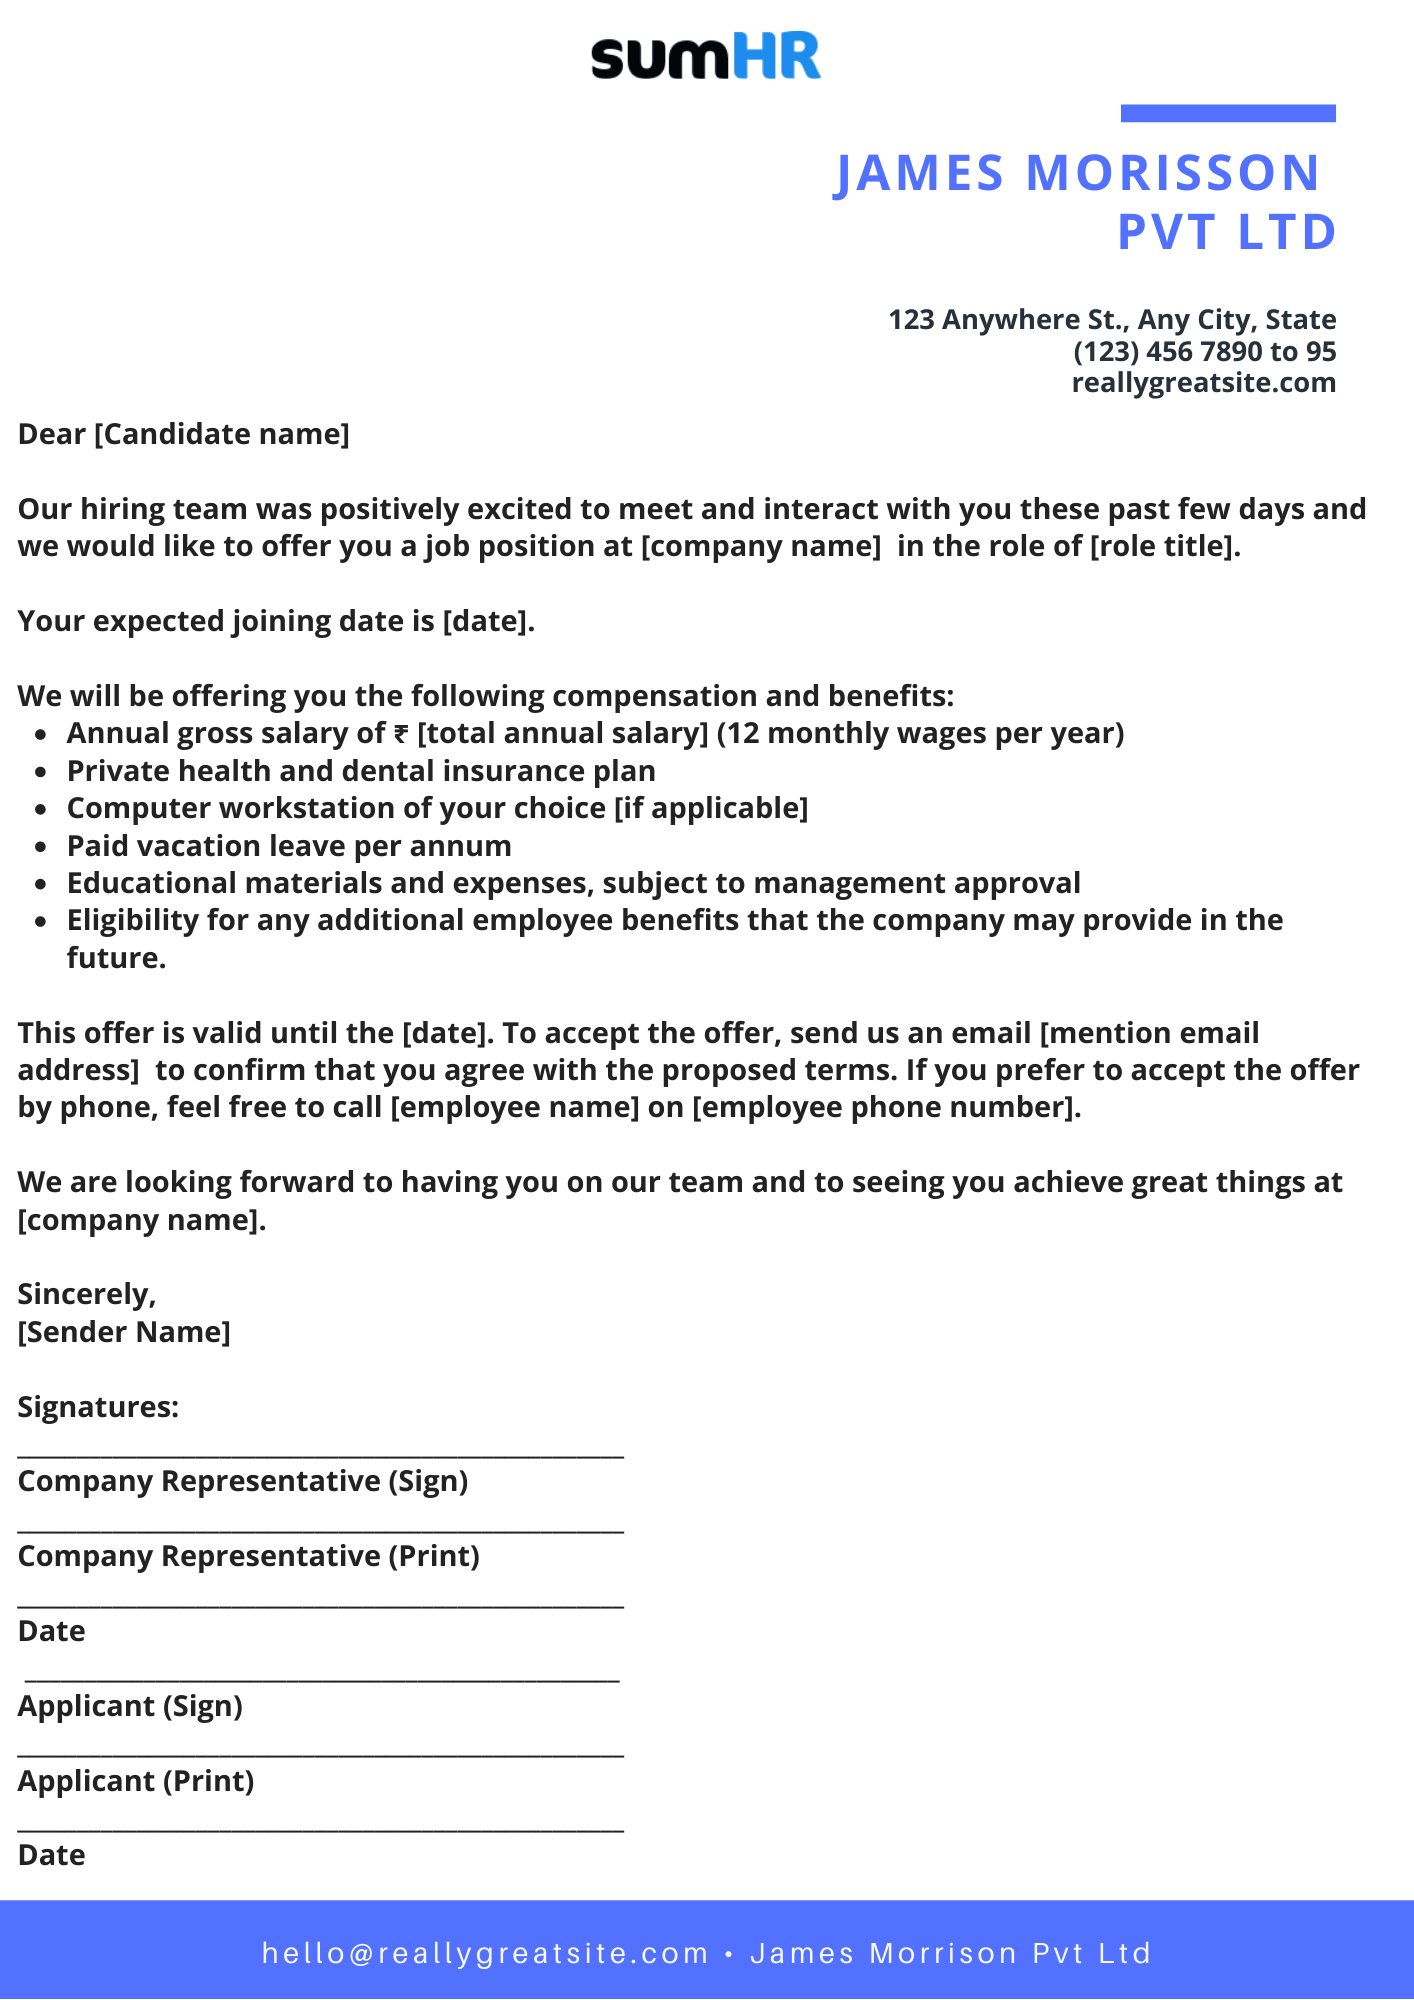 Workable Job Offer Template